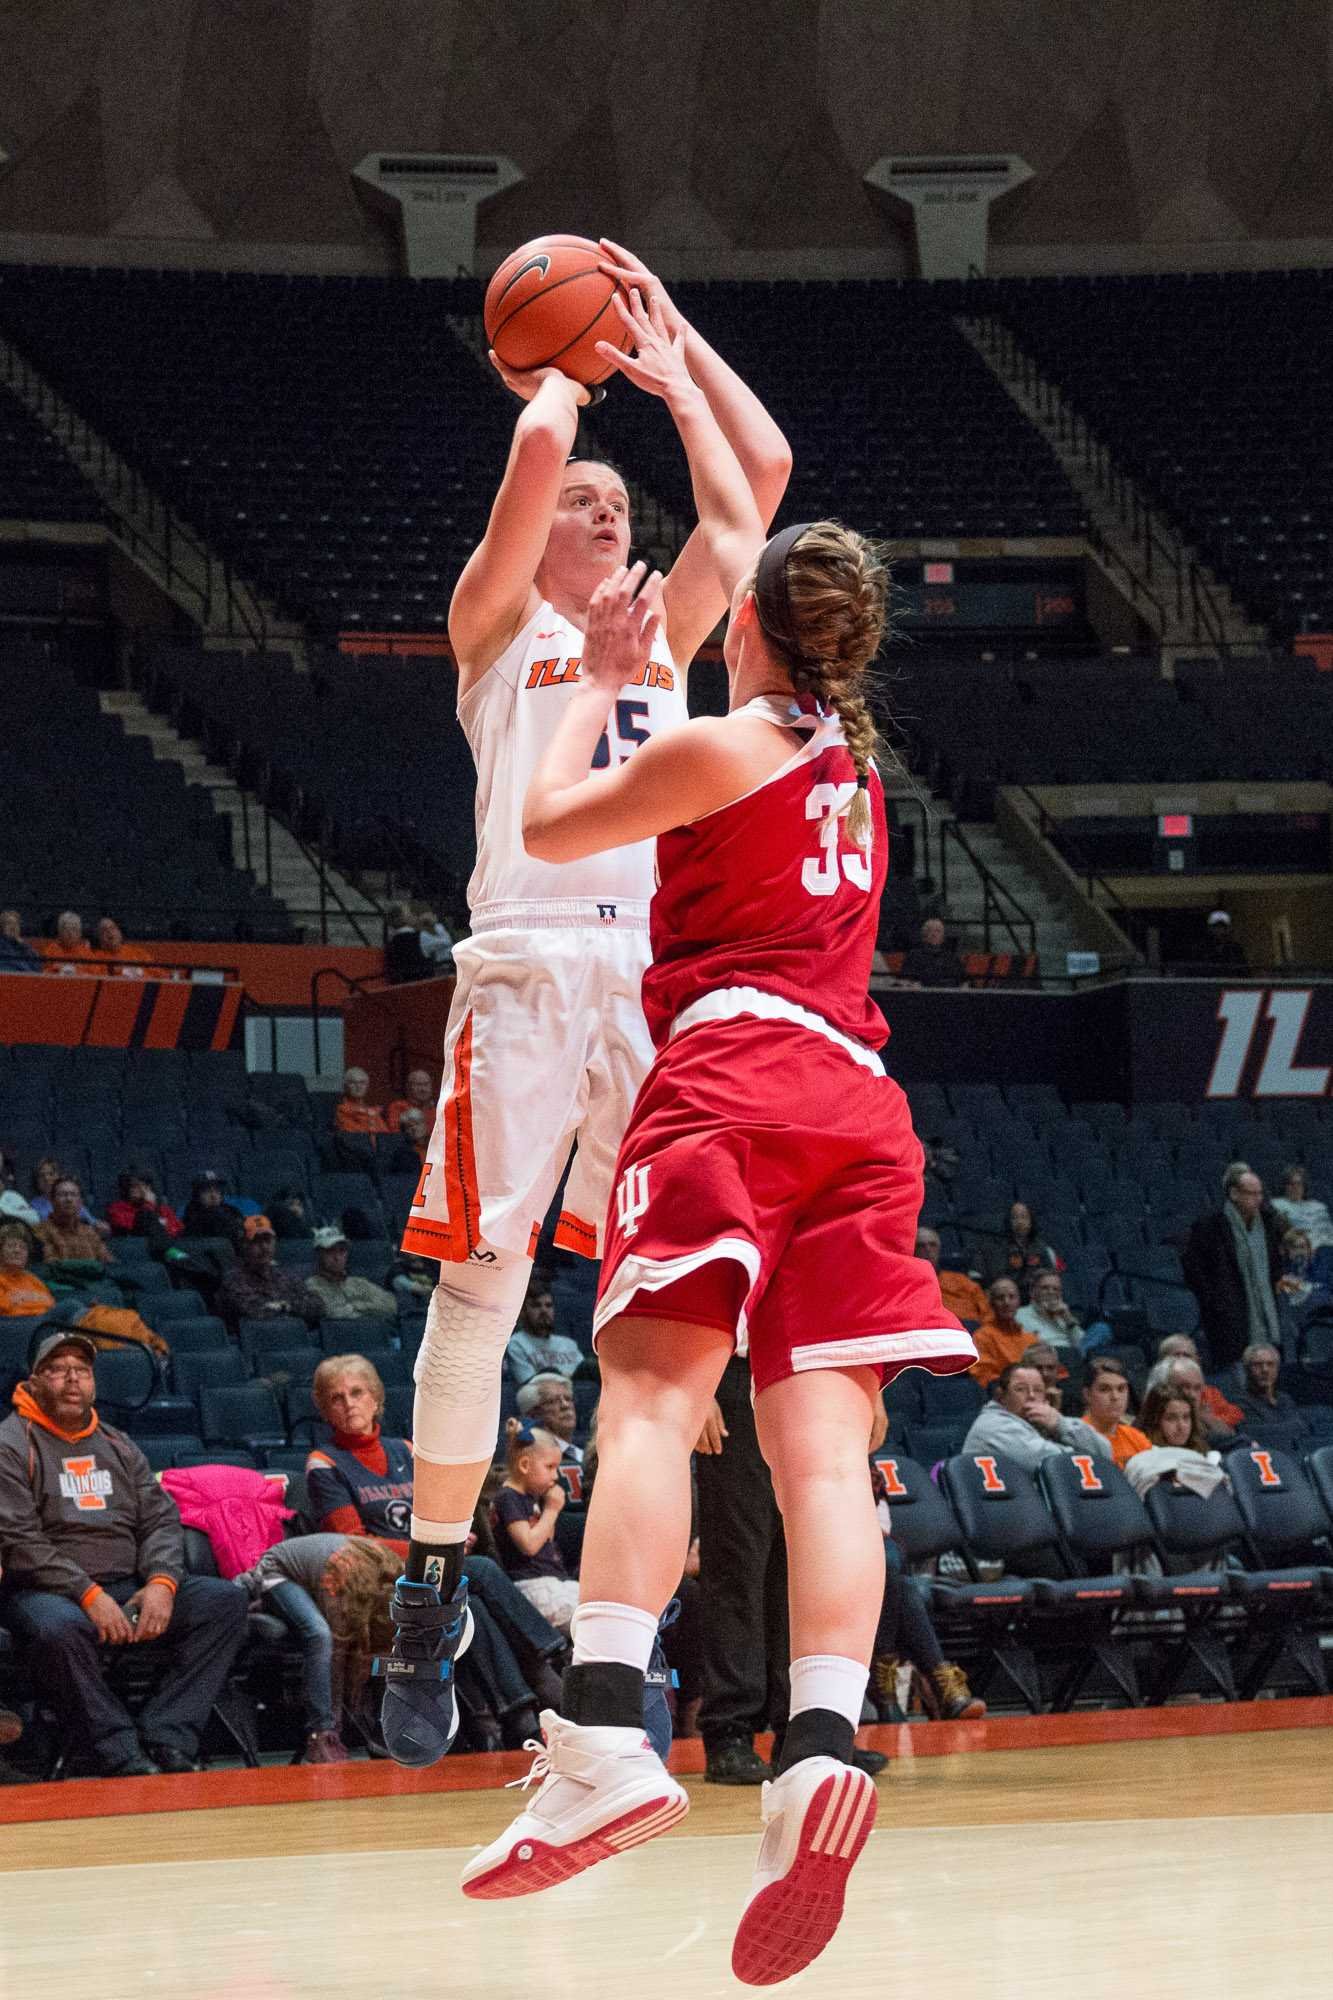 Illinois' Alex Wittinger shoots a jumper over Indiana's Amanda Cahill during the game against Indiana at the State Farm Center on February 10. The Illini lost 70-68.